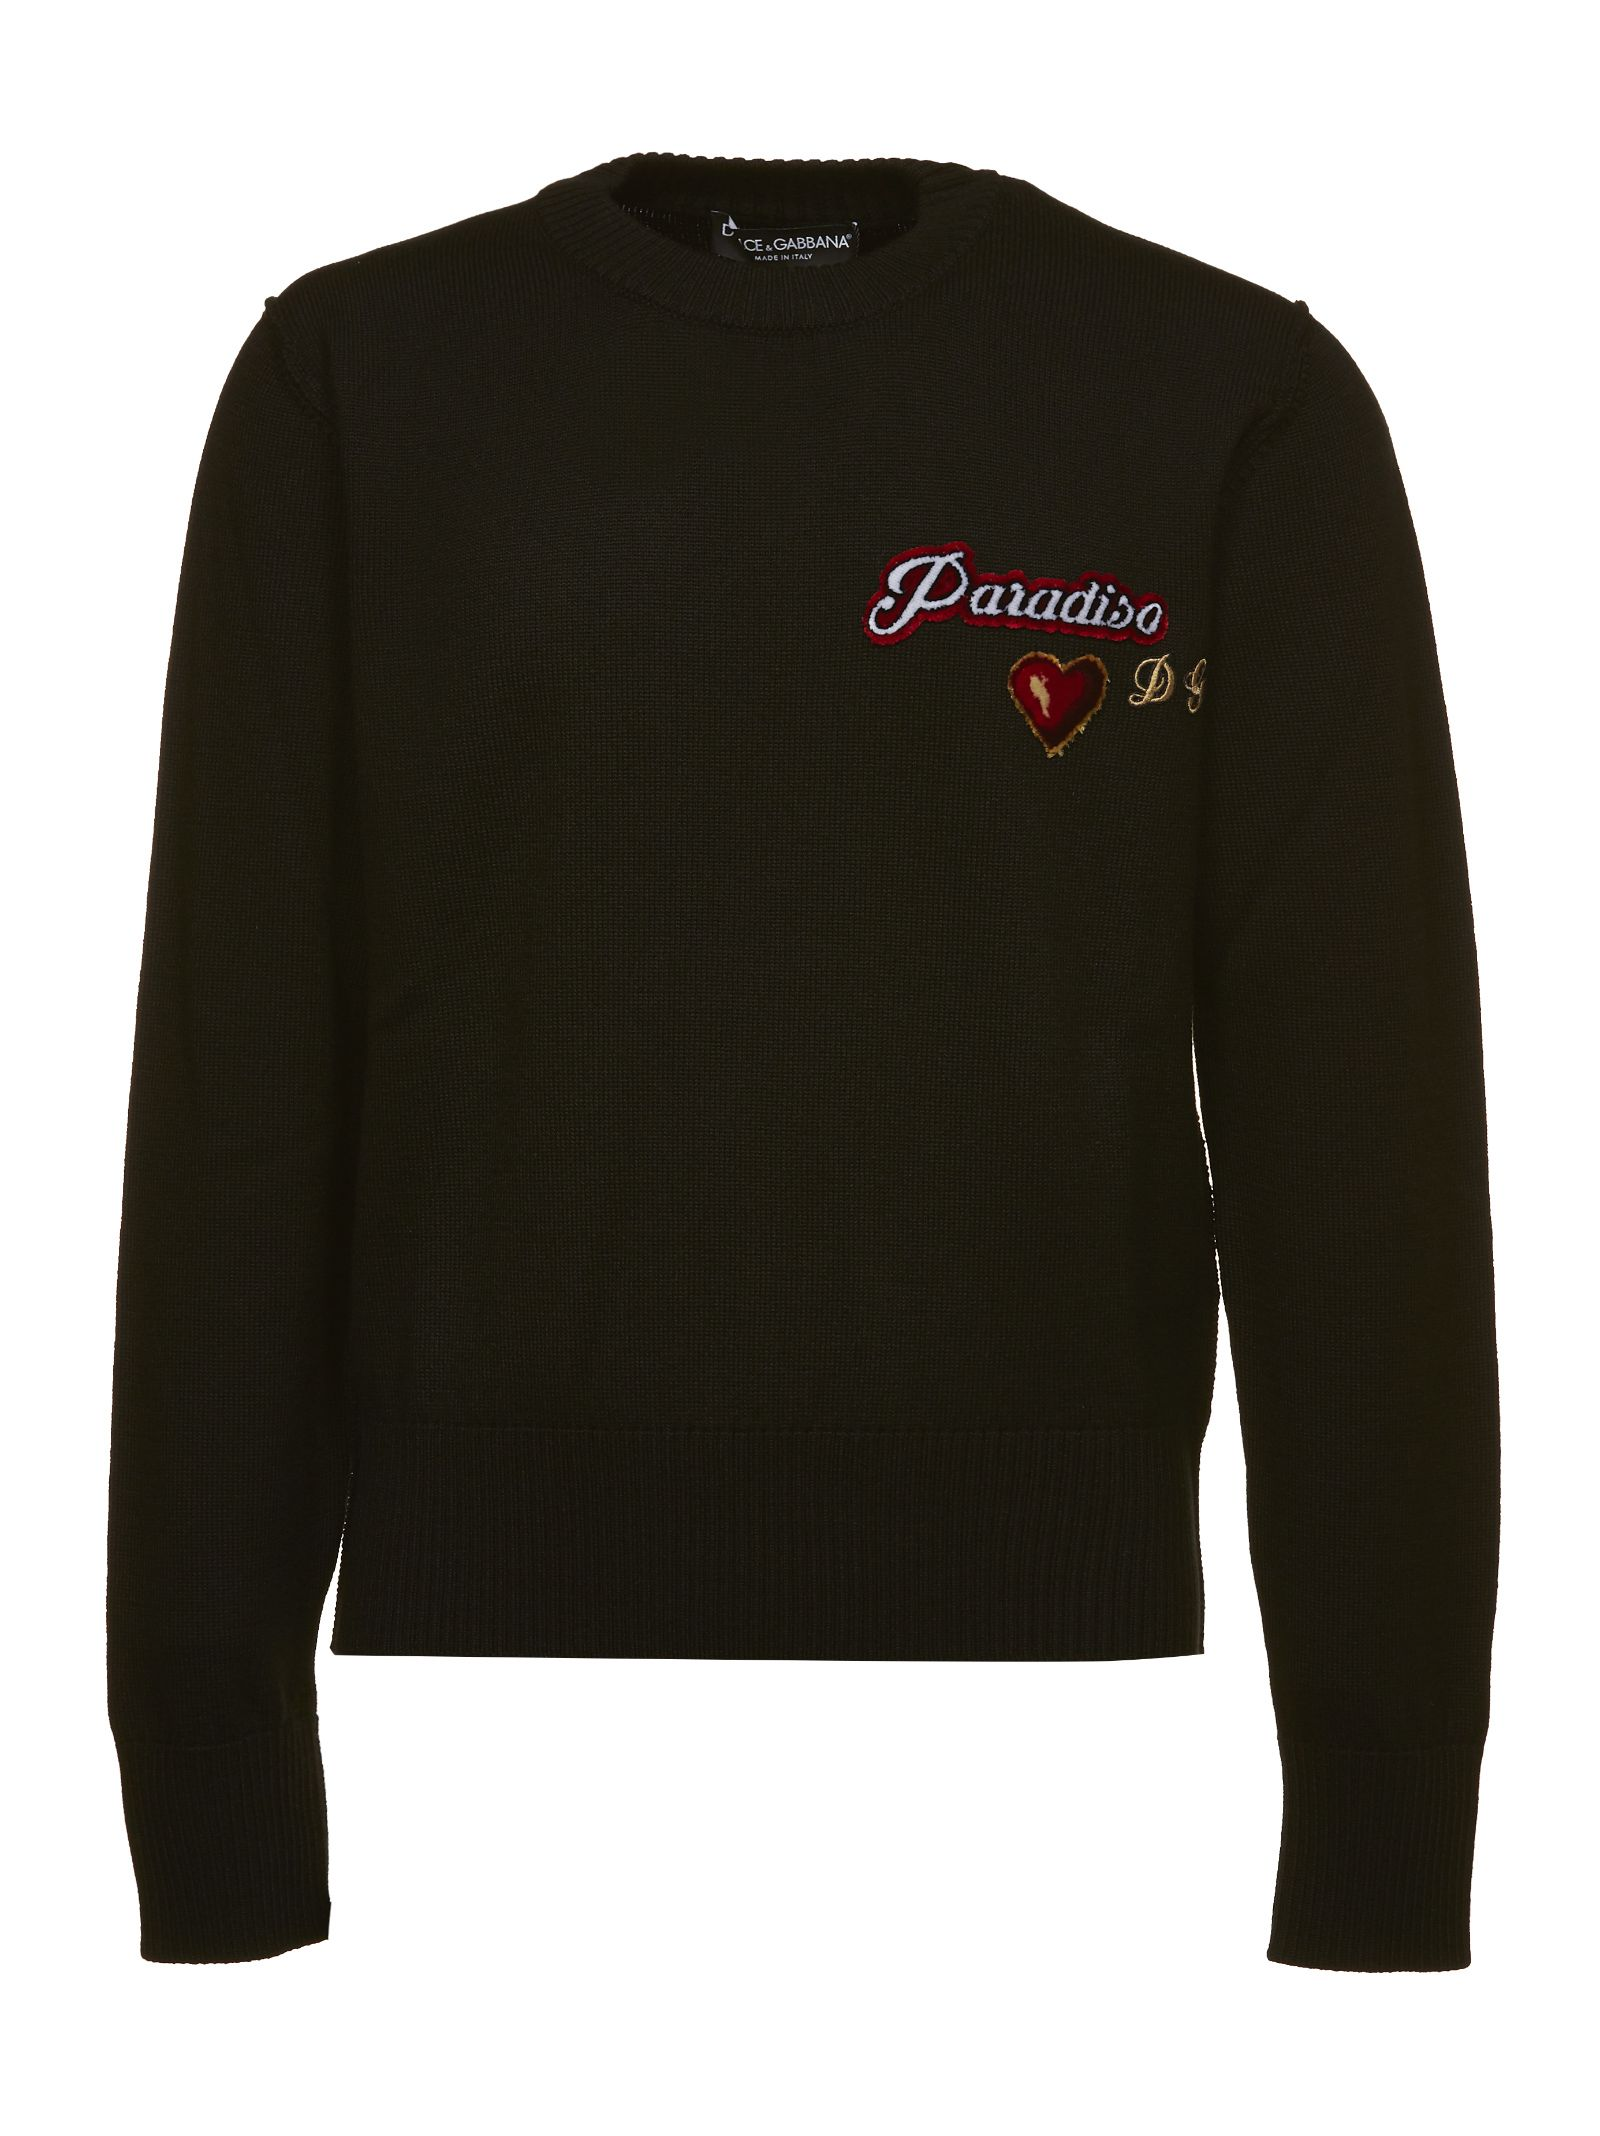 DOLCE & GABBANA EMBROIDERED KNITTED SWEATER